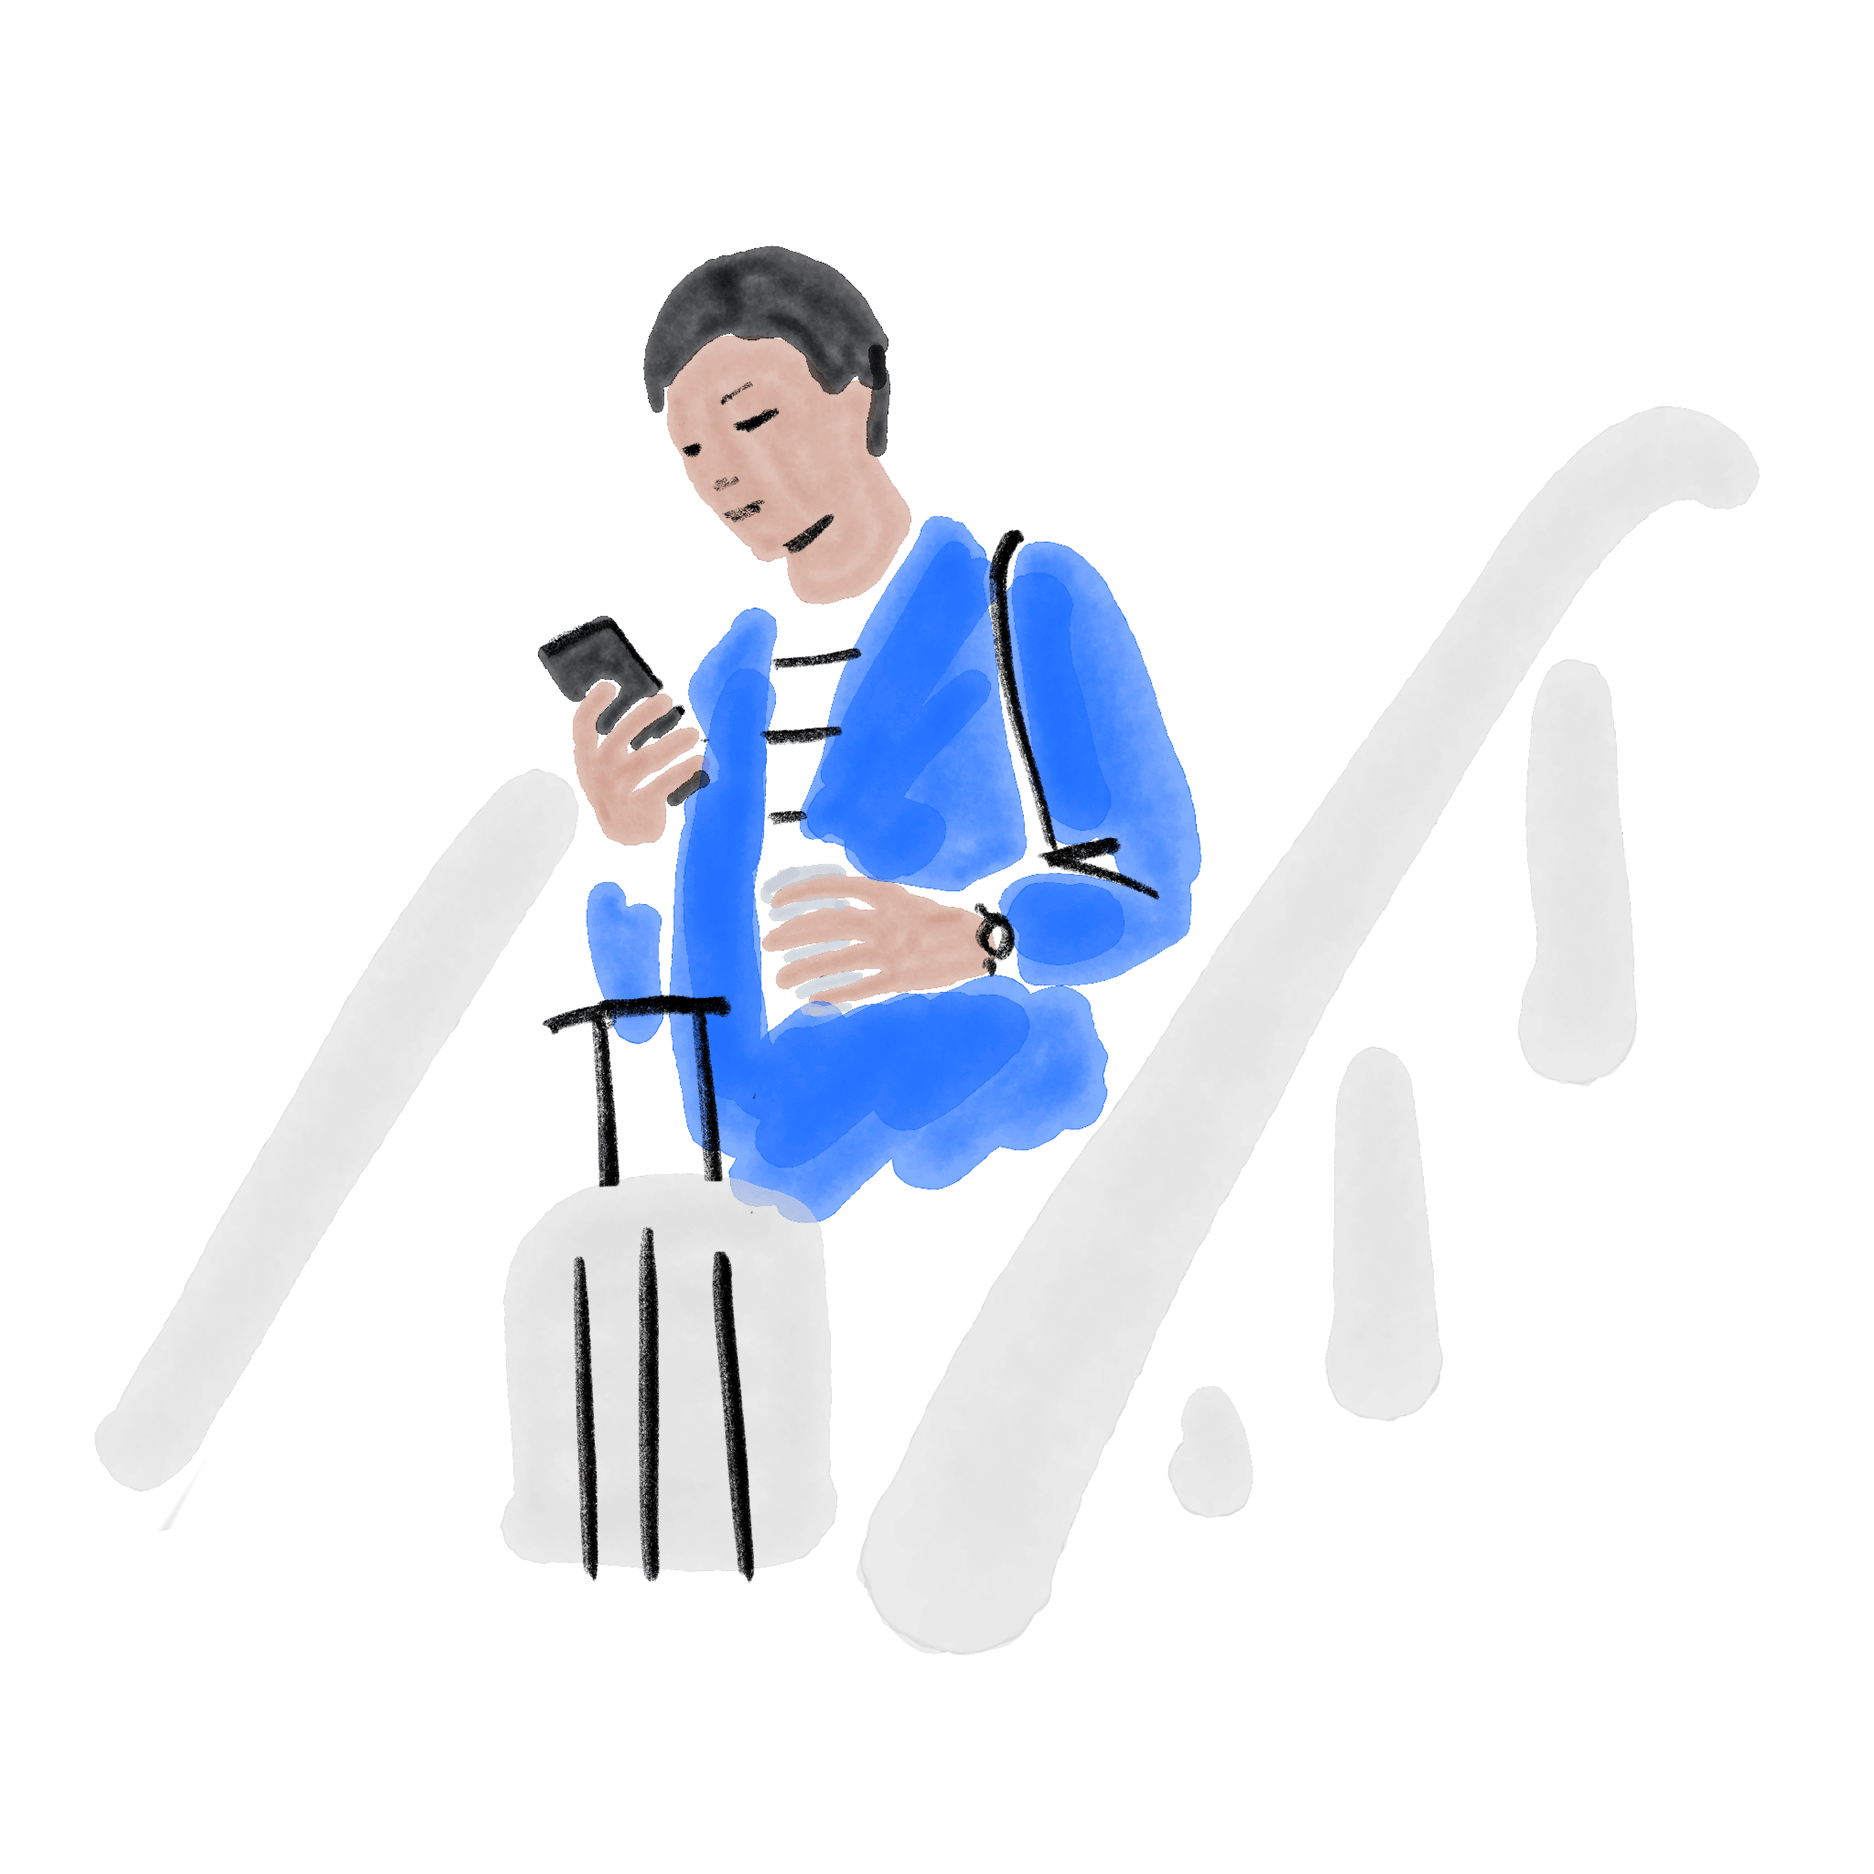 Illustration of a man holding a travel suitcase coming down the stairs